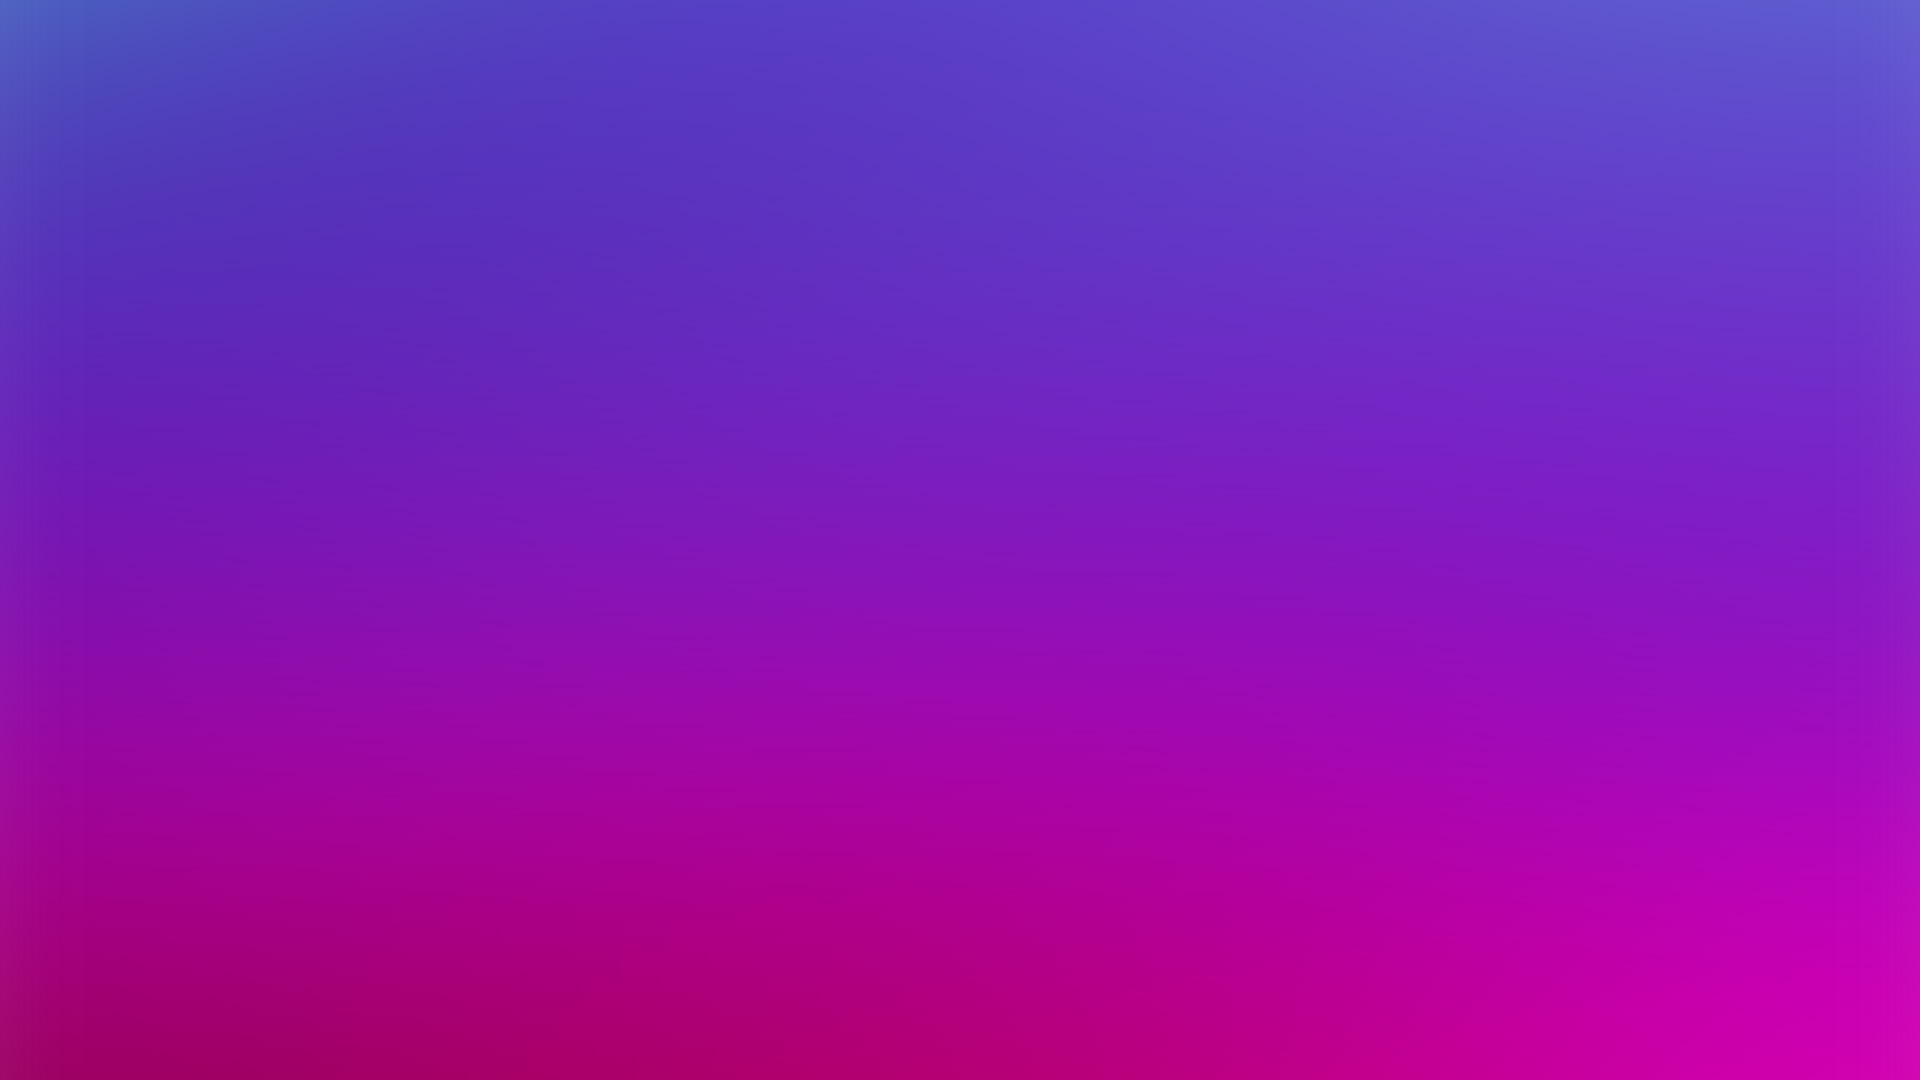 Sl30 Blue Pink Purple Blur Gradation Wallpaper